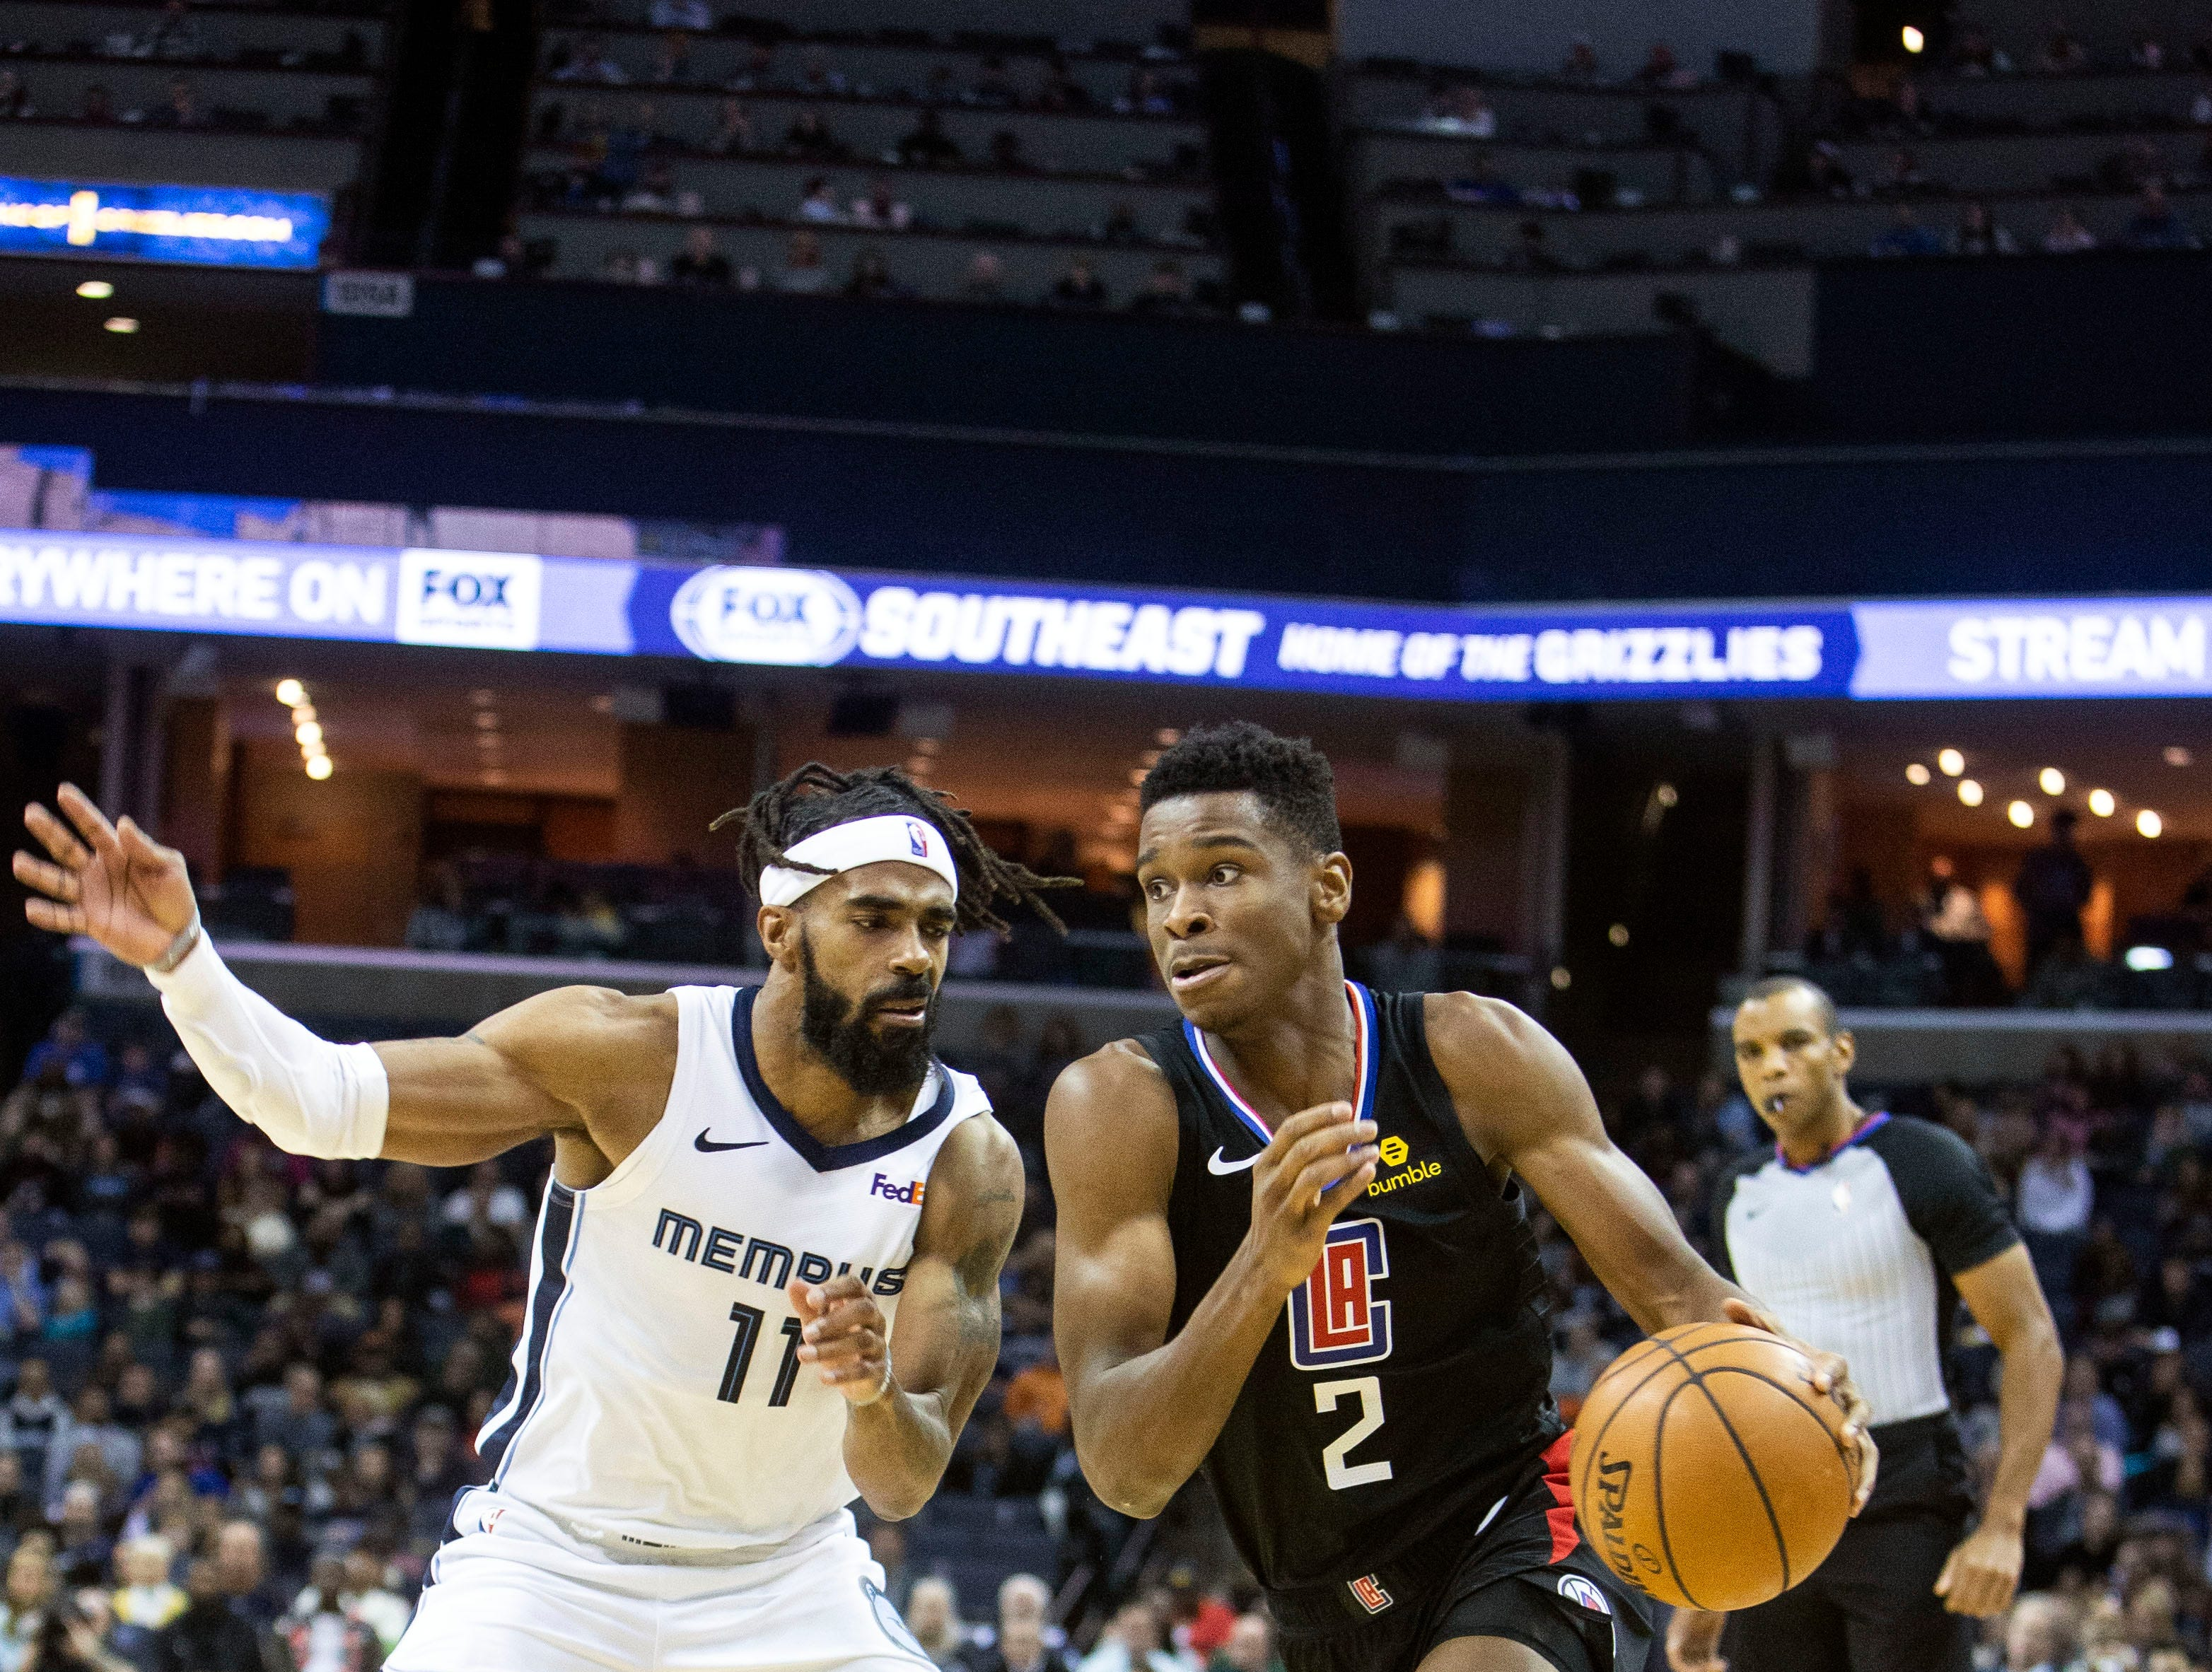 Memphis Grizzles guard Mike Conley (11) blocks Los Angeles Clippers guard Shai Gilgeous-Alexander (2) during a NBA basketball game in the Fedex Forum, Wednesday, Dec. 5, 2018.